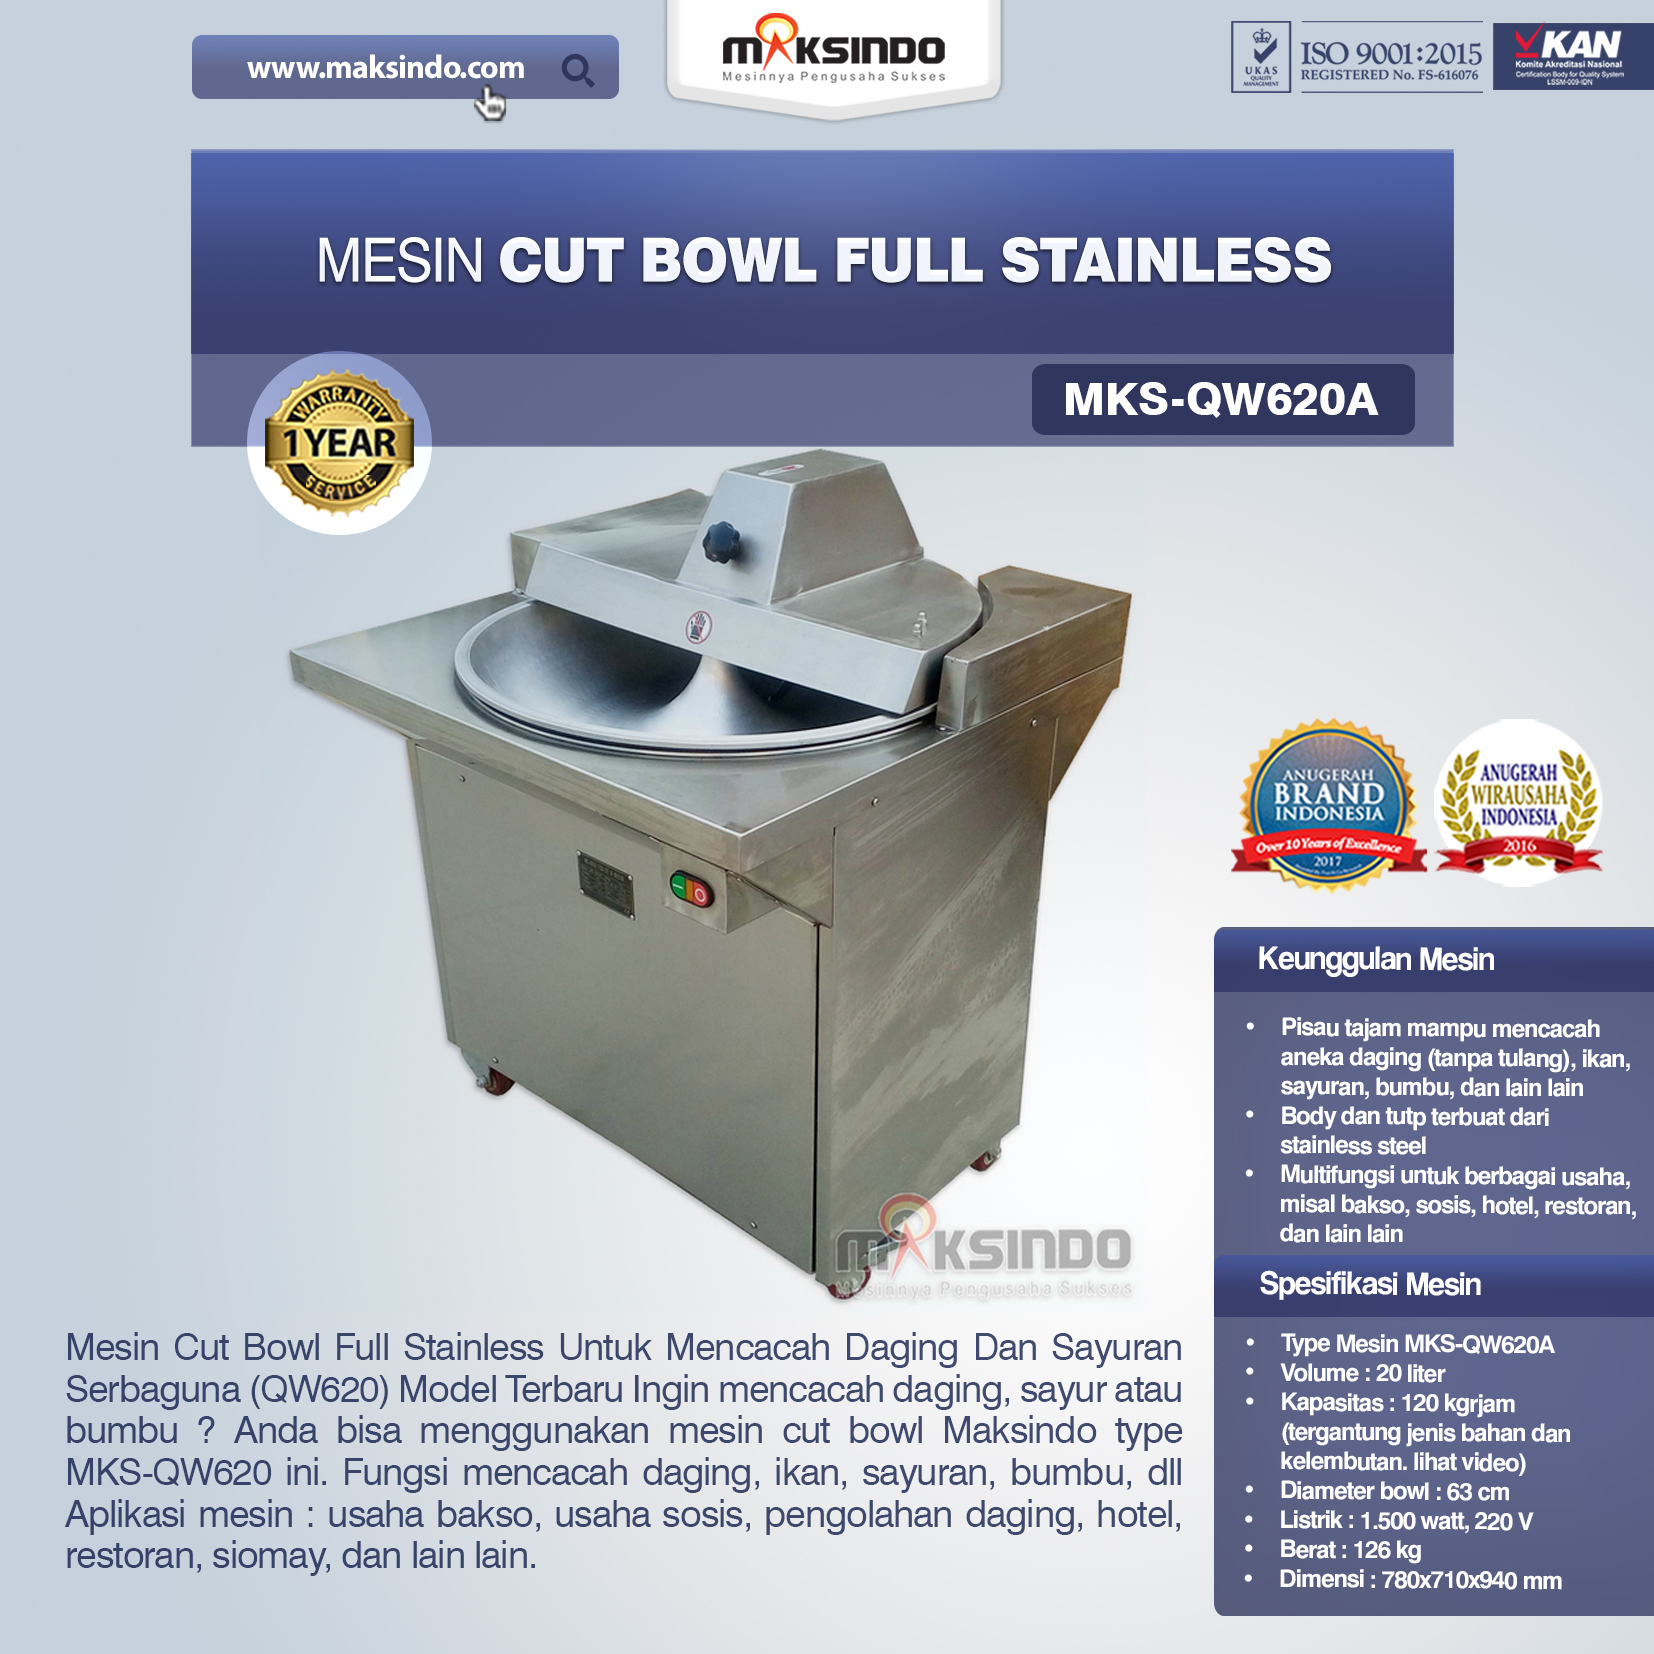 Jual Mesin Cut Bowl Full Stainless (QW620A) di Malang